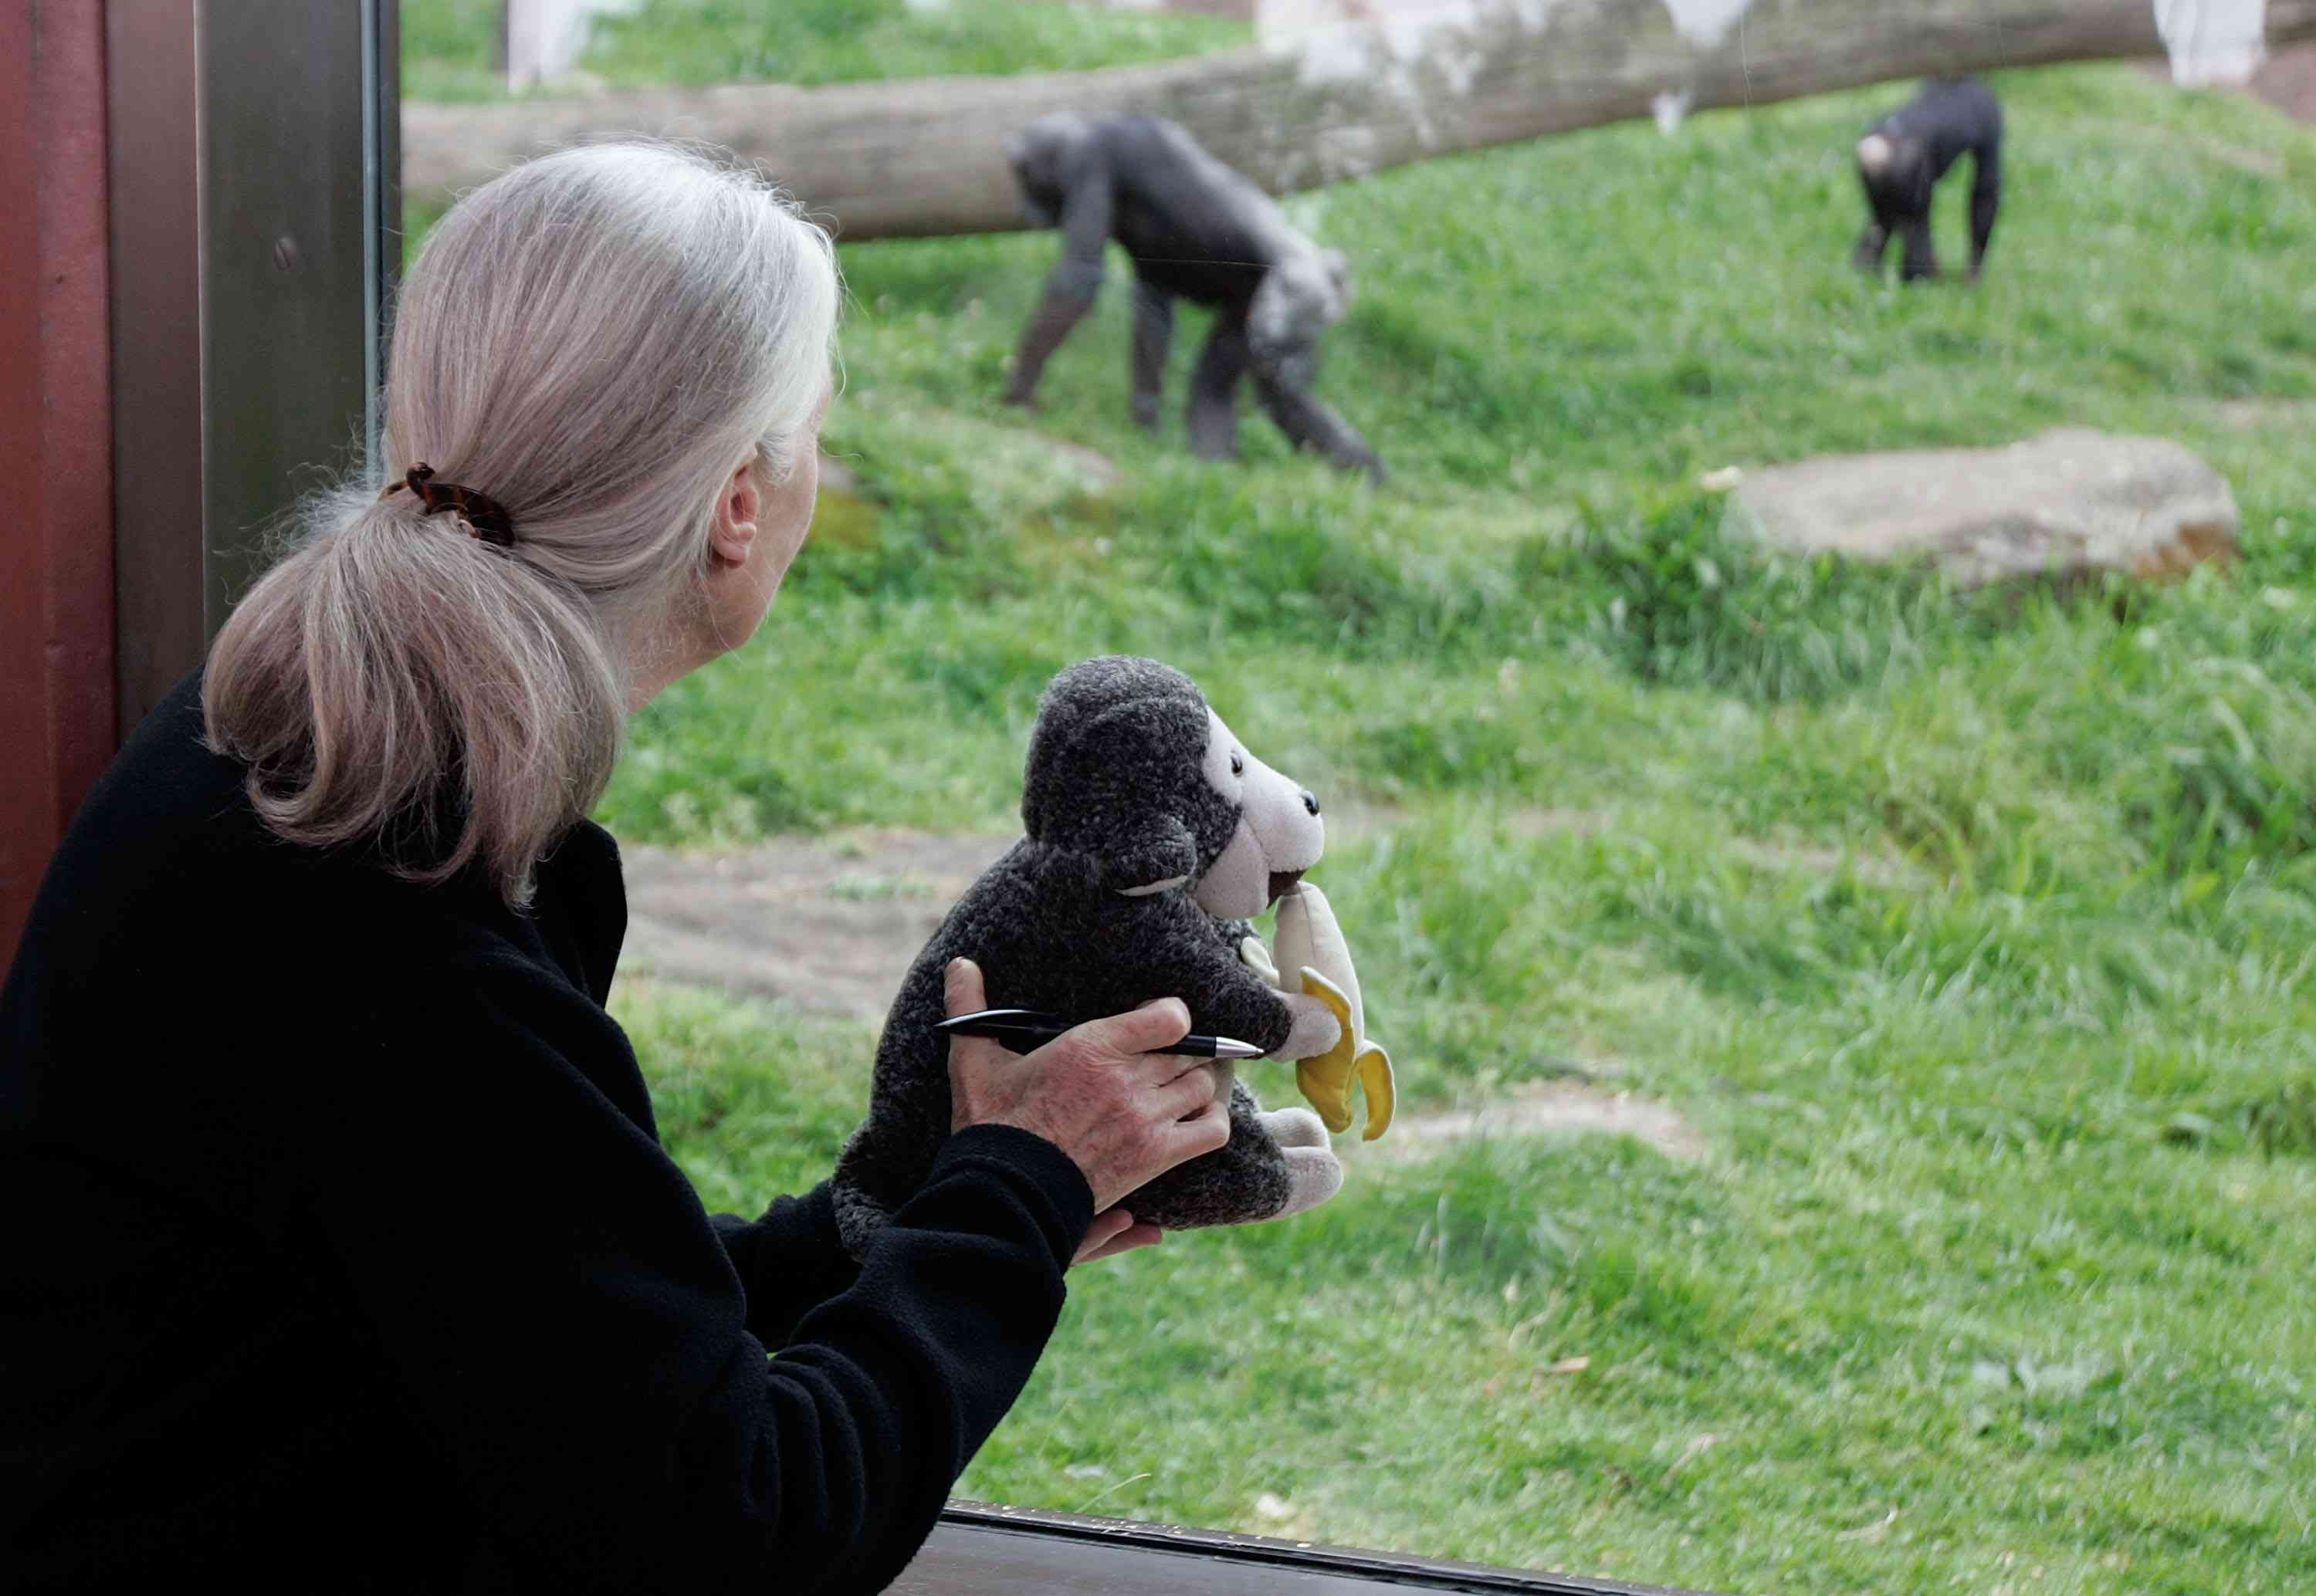 Jane Goodall holds a stuffed while observing apes at a zoo.